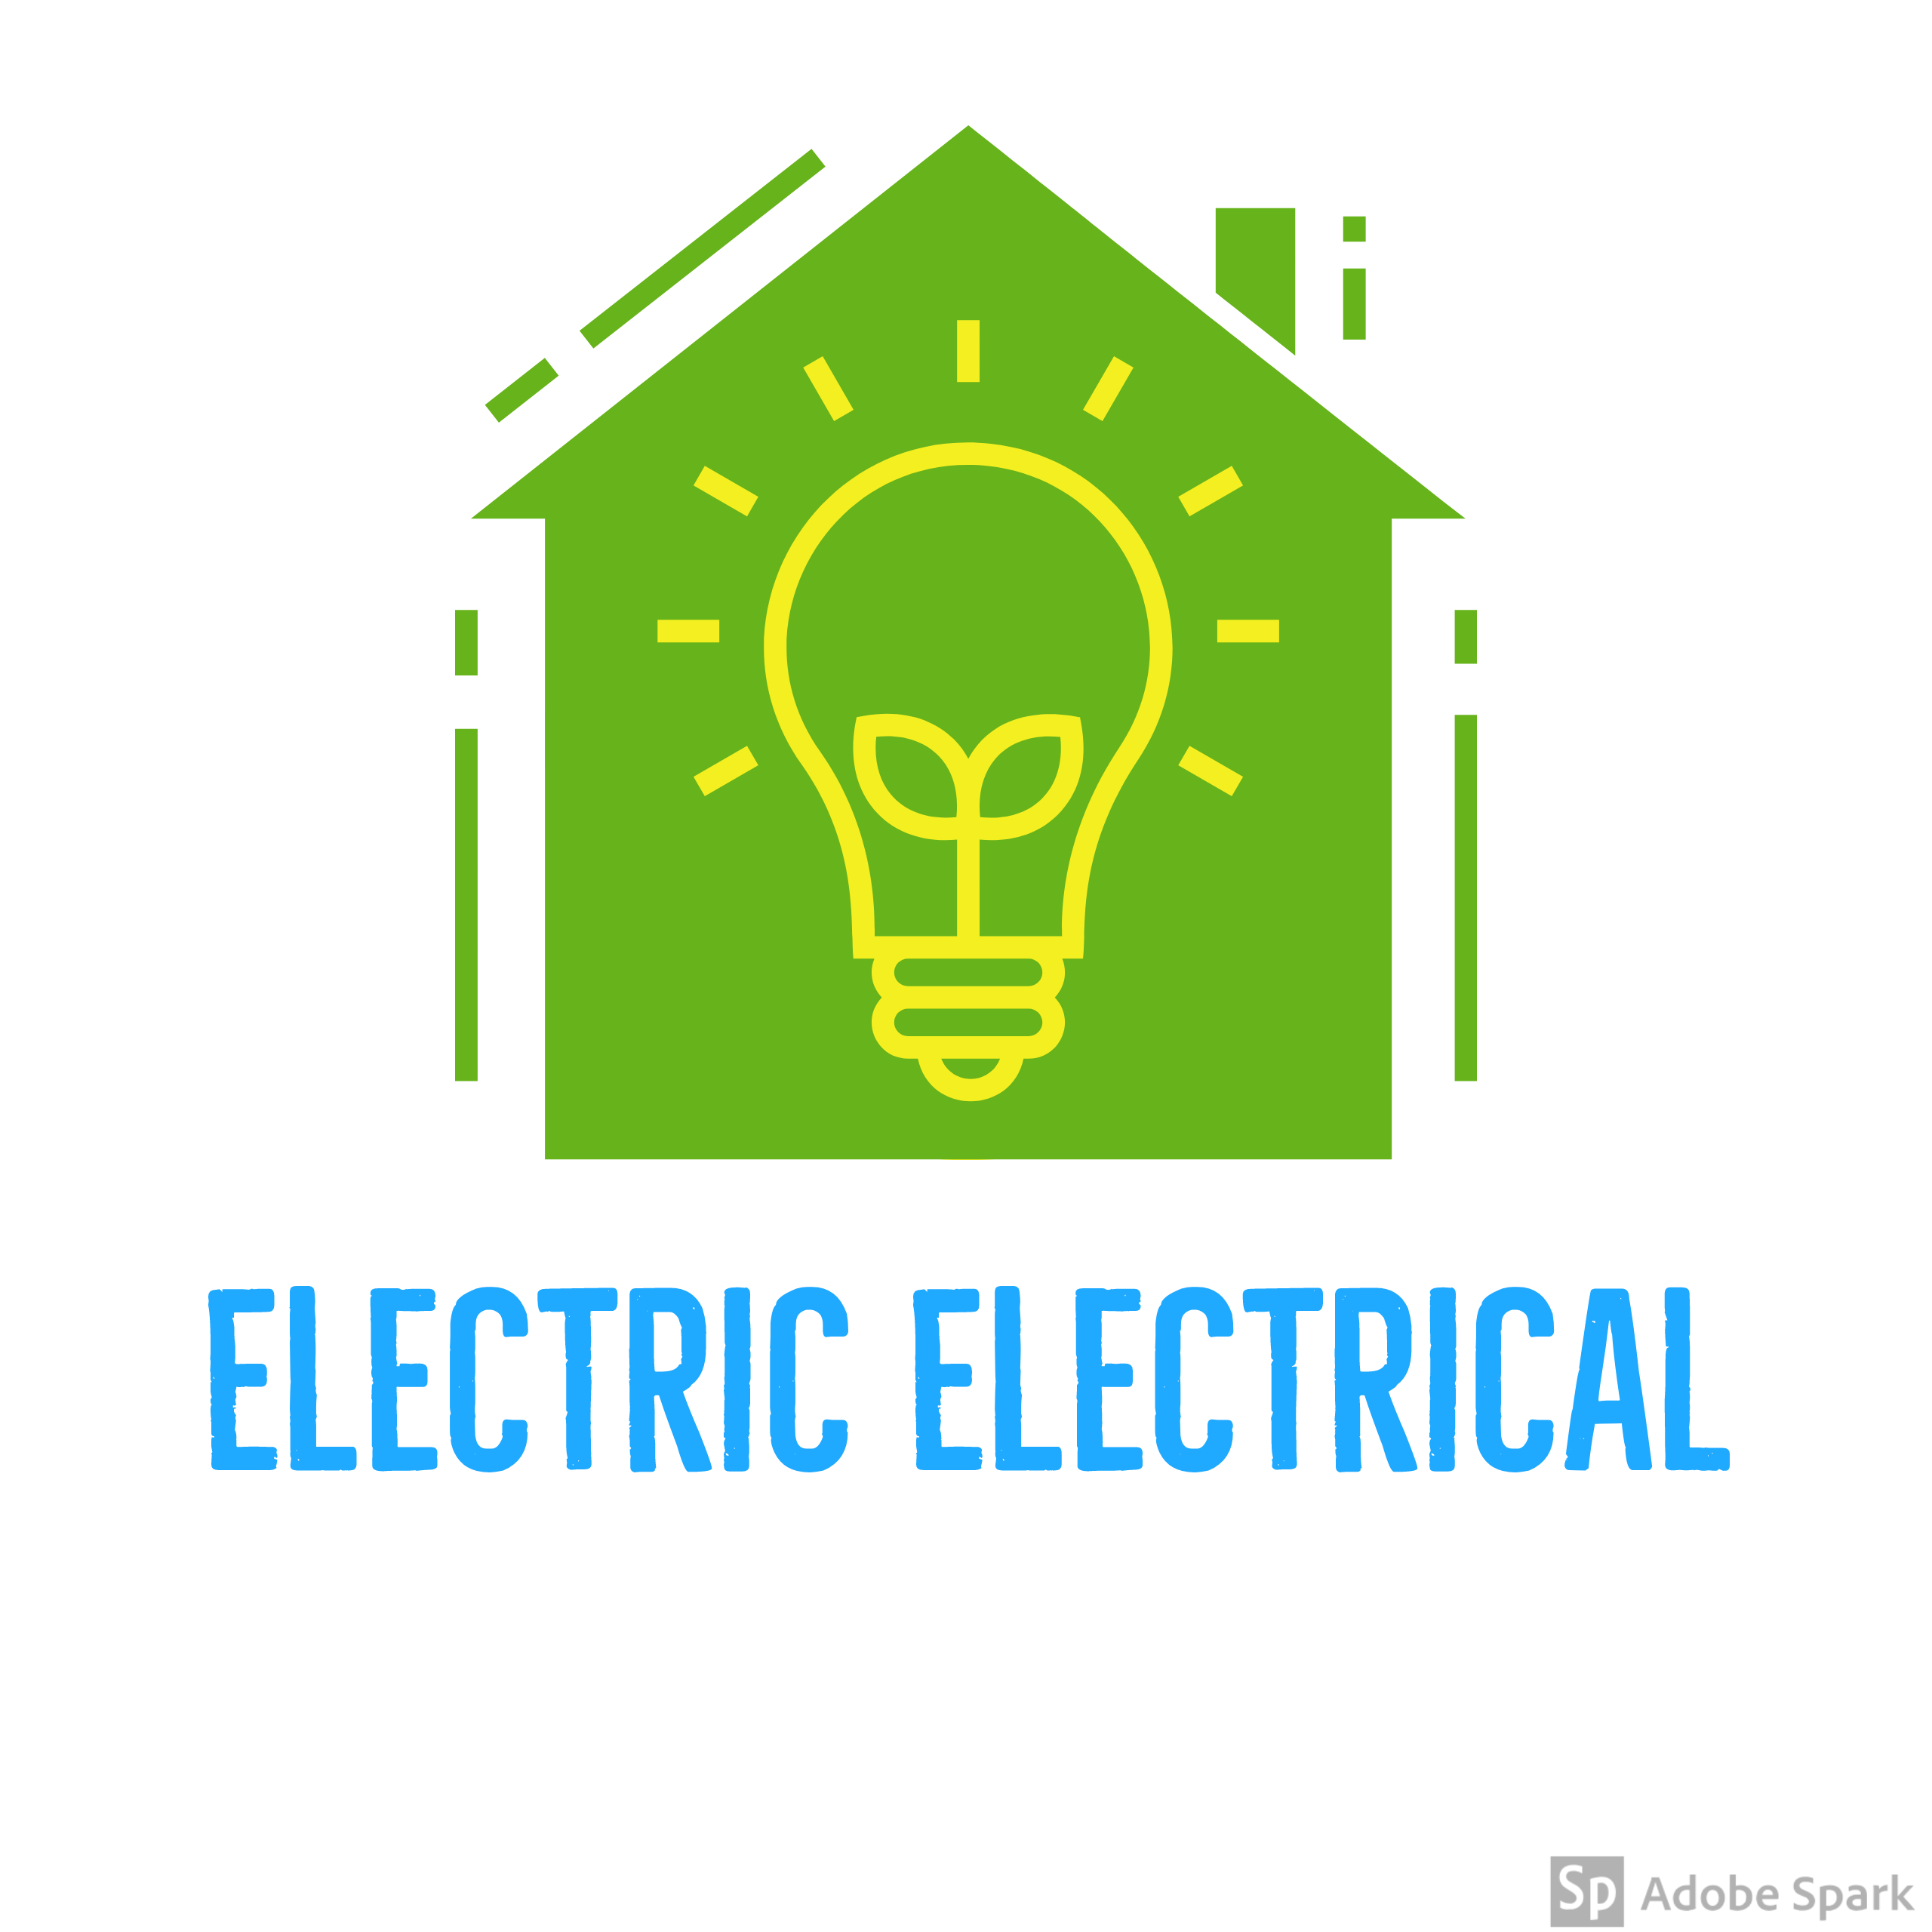 Electric Electrical